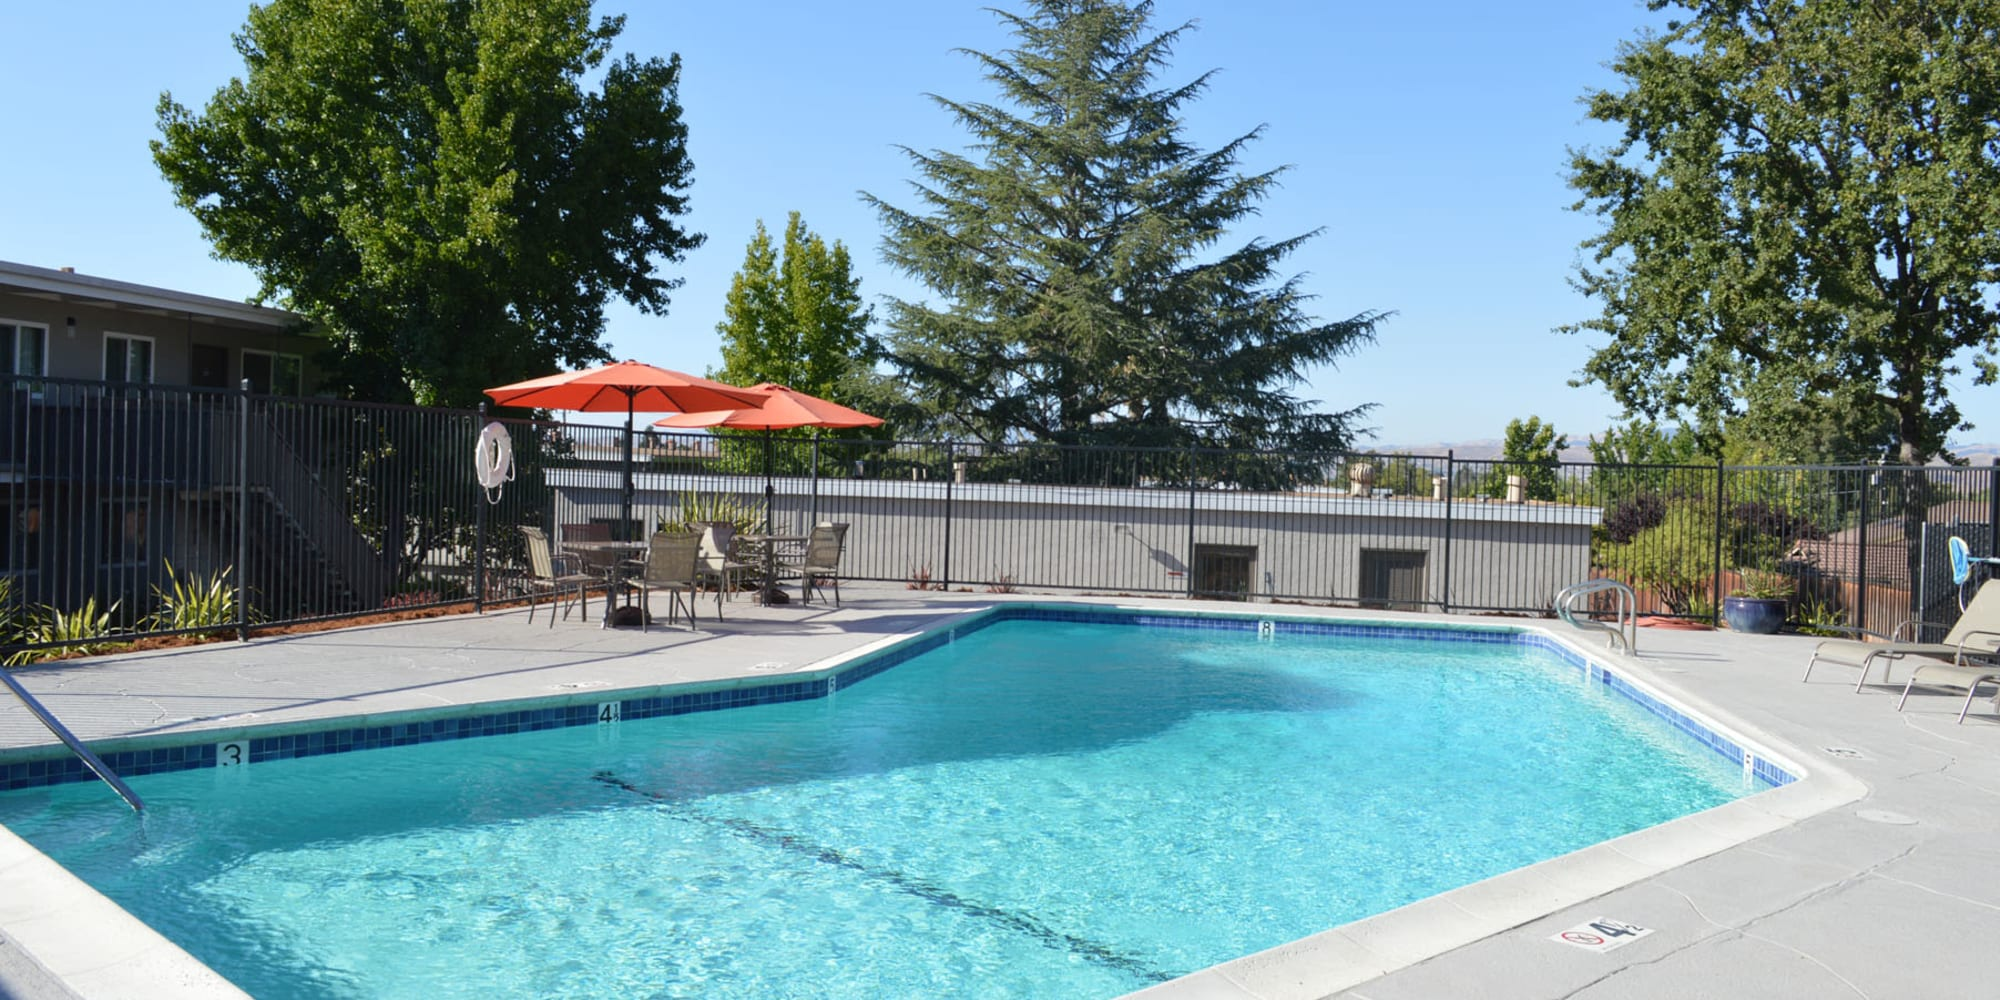 Inviting swimming pool on another beautiful day at Pleasanton Heights in Pleasanton, California